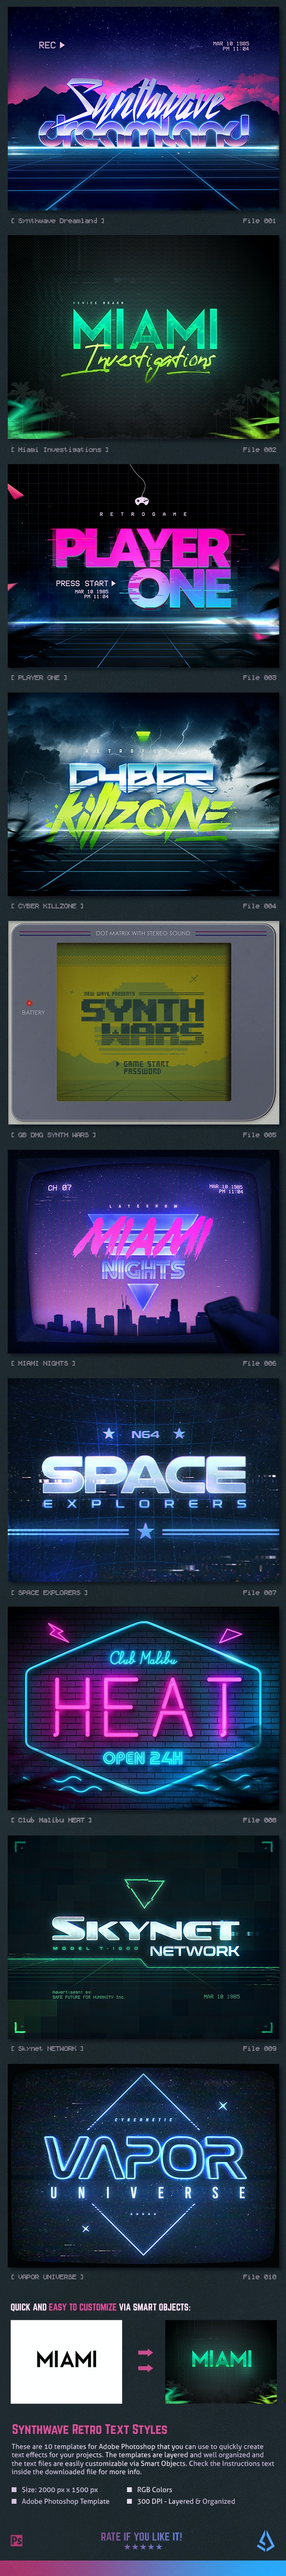 Synthwave 80s Retro Text Effects - Text Effects Actions